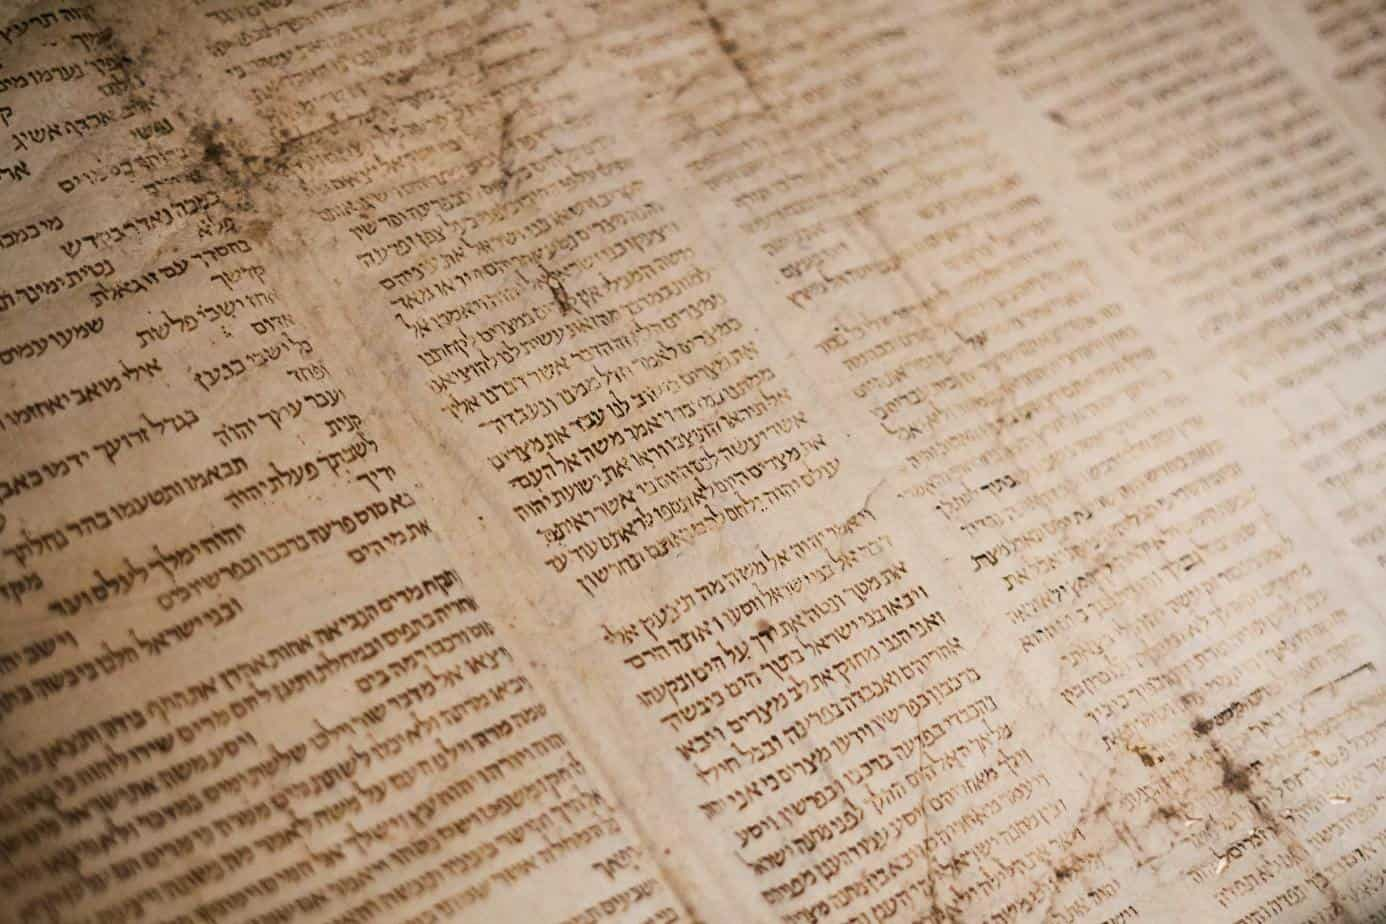 Celebrating the Torah, but differently